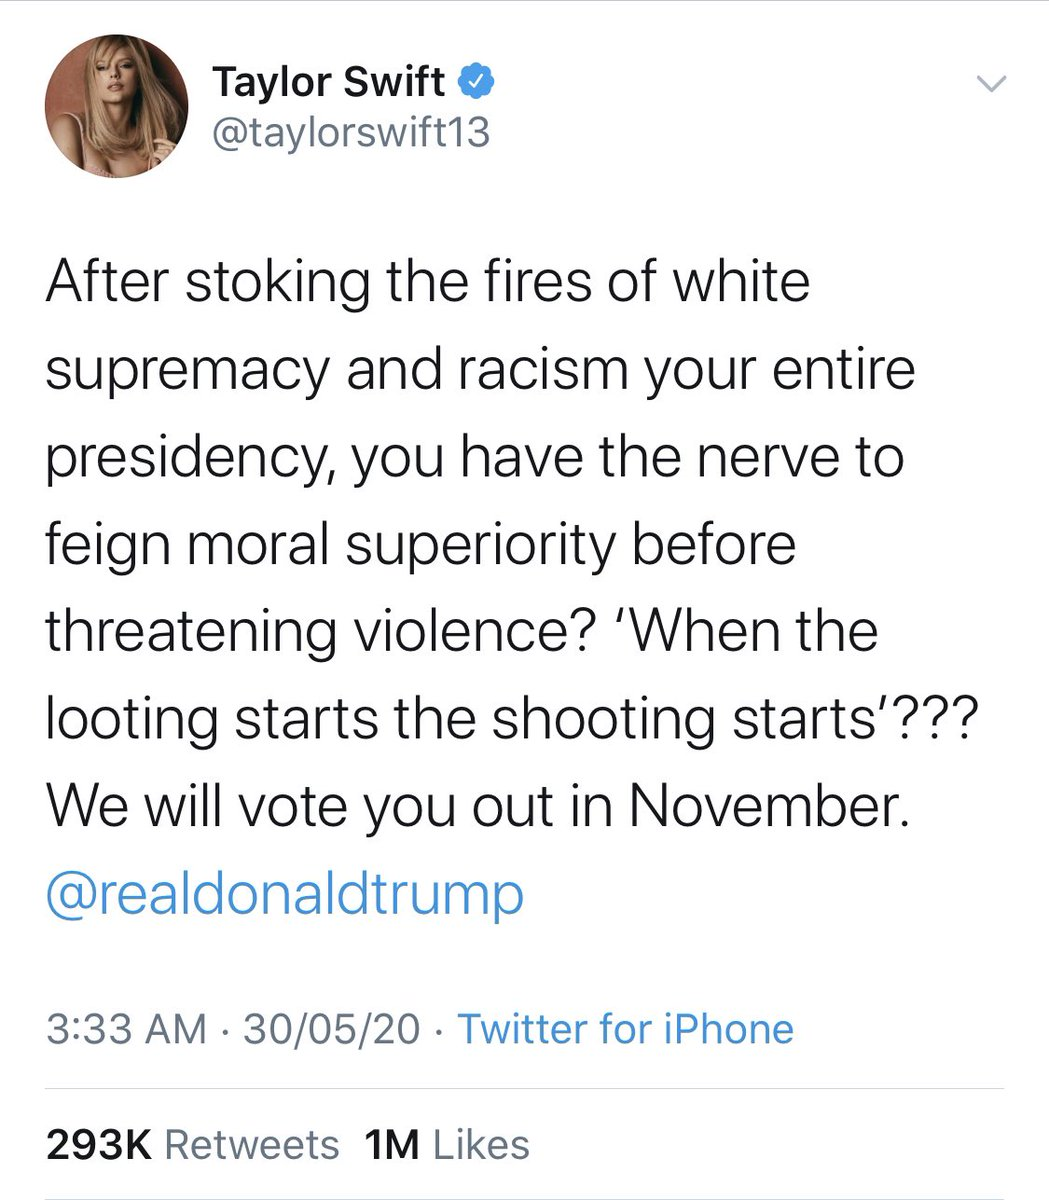 Taylor Swift News On Twitter Taylorswift13 S Tweet Against Donald Trump Has Now Surpassed 1 Million Likes On Twitter In Less Than 5 Hours It Has Become Her Most Liked Tweet